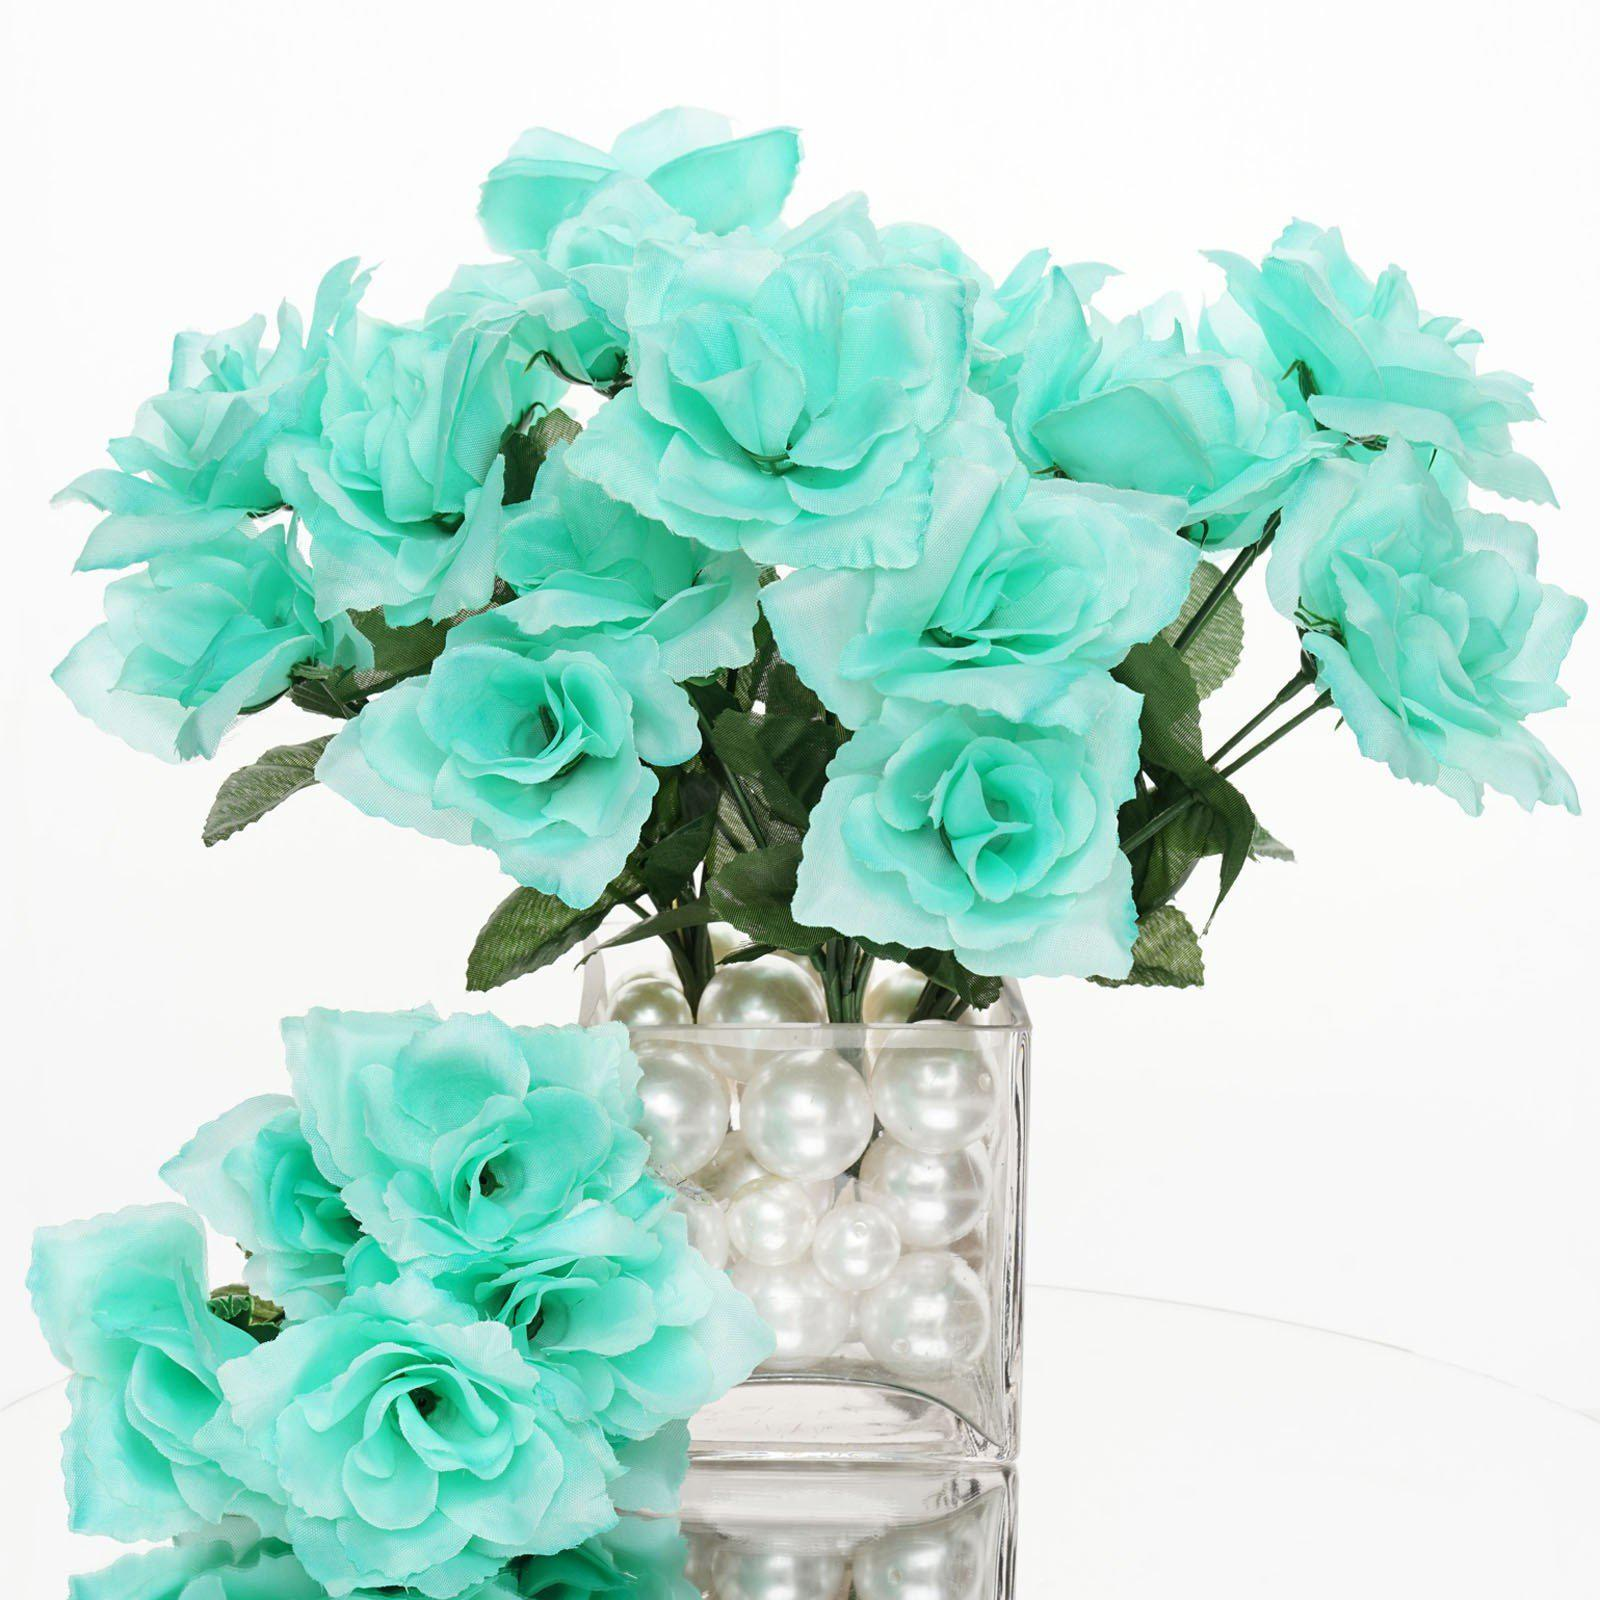 12 Bushes 84 Pcs Aqua Artificial Silk Rose Flowers With Green Leaves